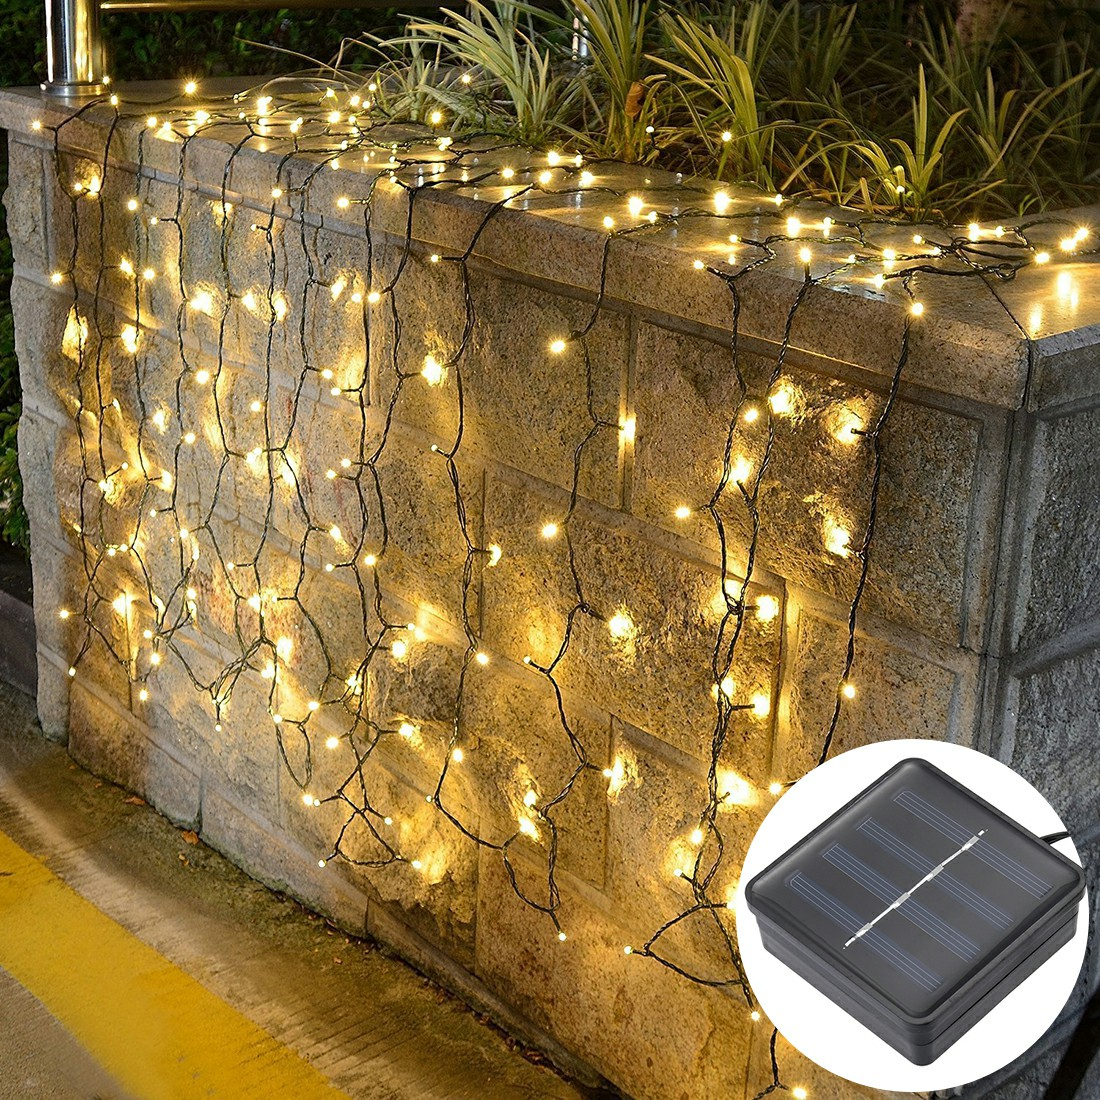 100 LEDs Solar Powered LED String Lights for Garden Fence Party Decoration - Warm White Light